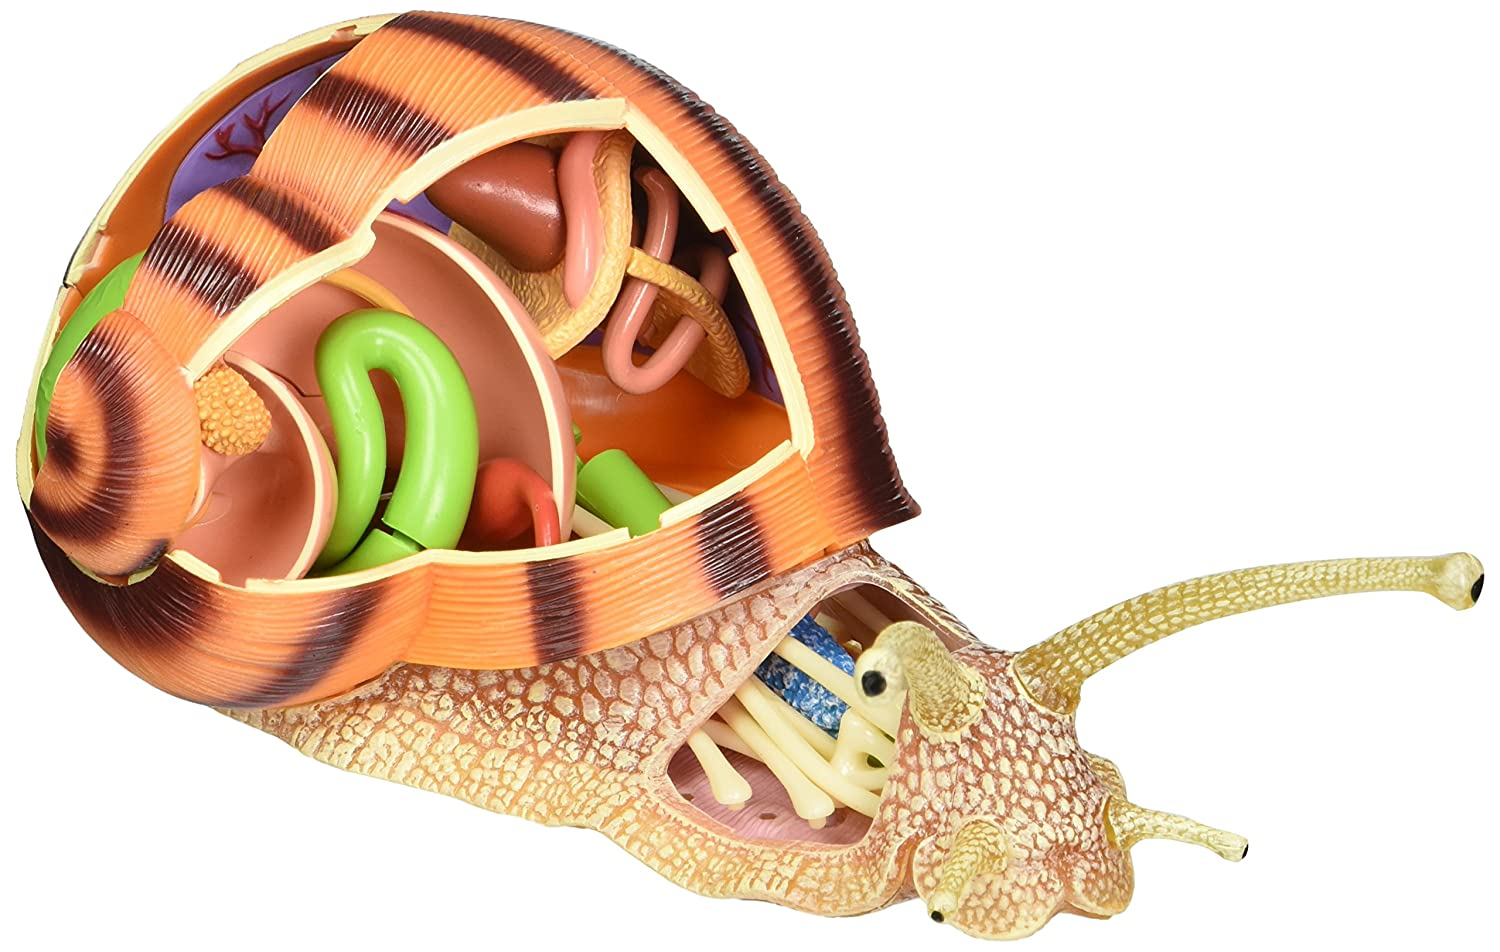 Amazon.com: TEDCO 4D Vision Snail Anatomy Model: Toys & Games